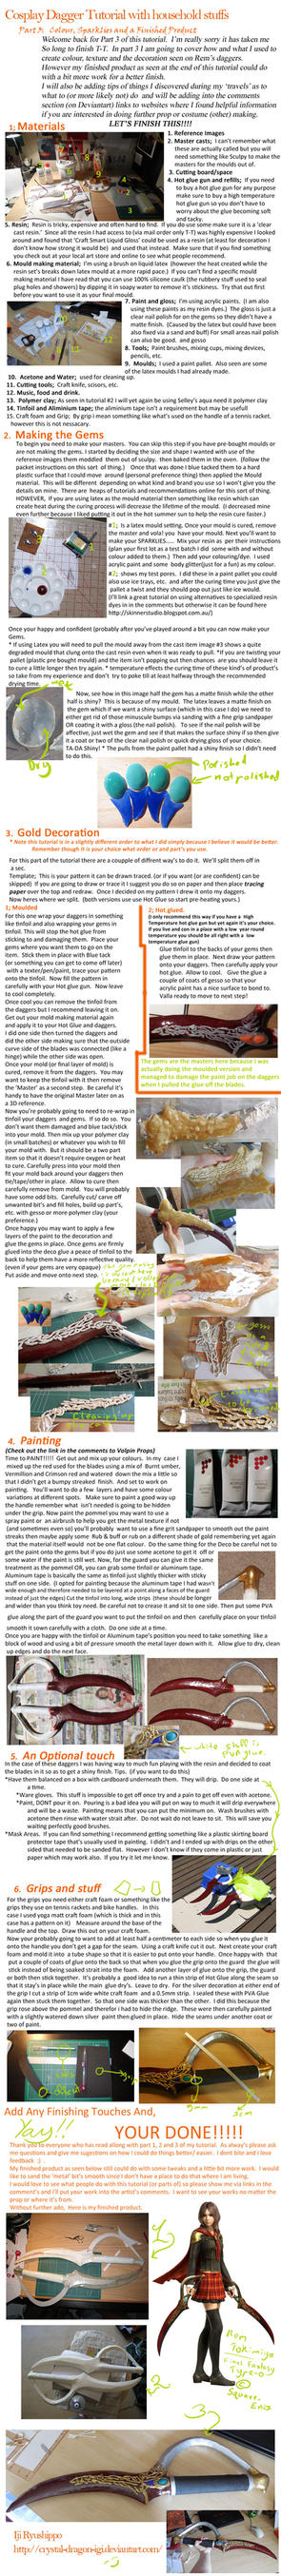 Dagger Tutorial with household stufs Part 3 by IjiRyushippo